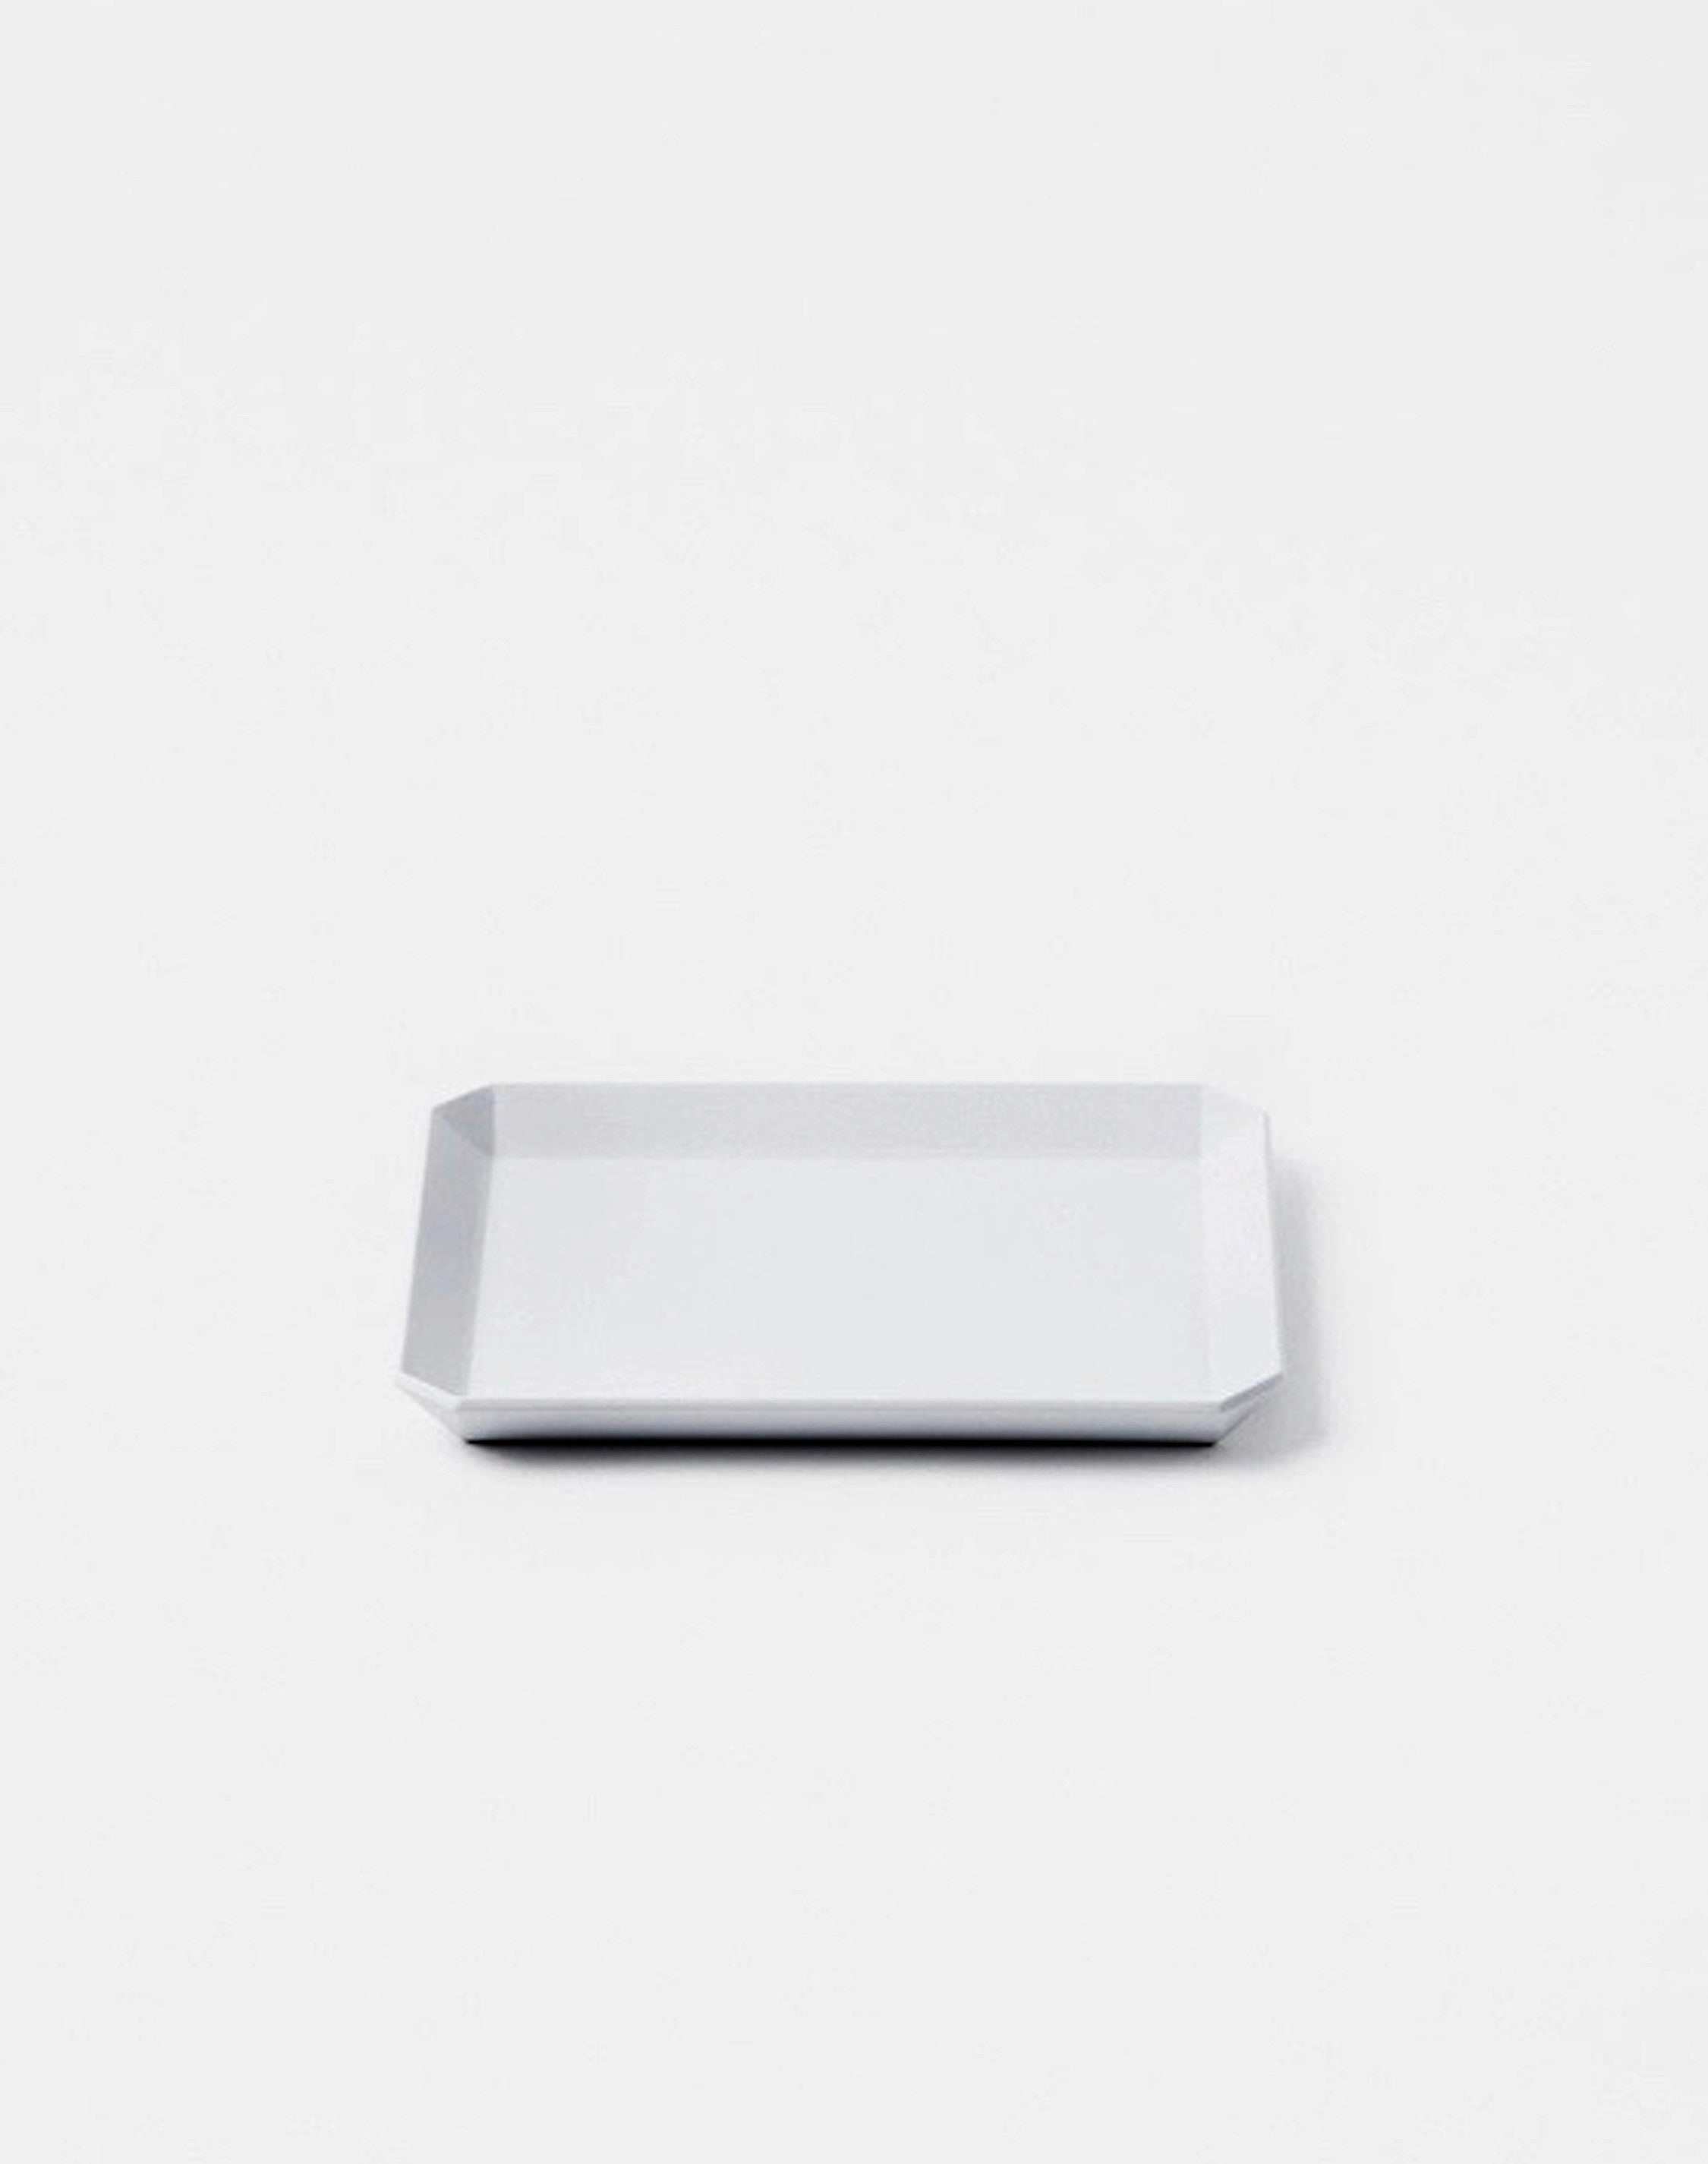 TY Square Plate 130 Gray